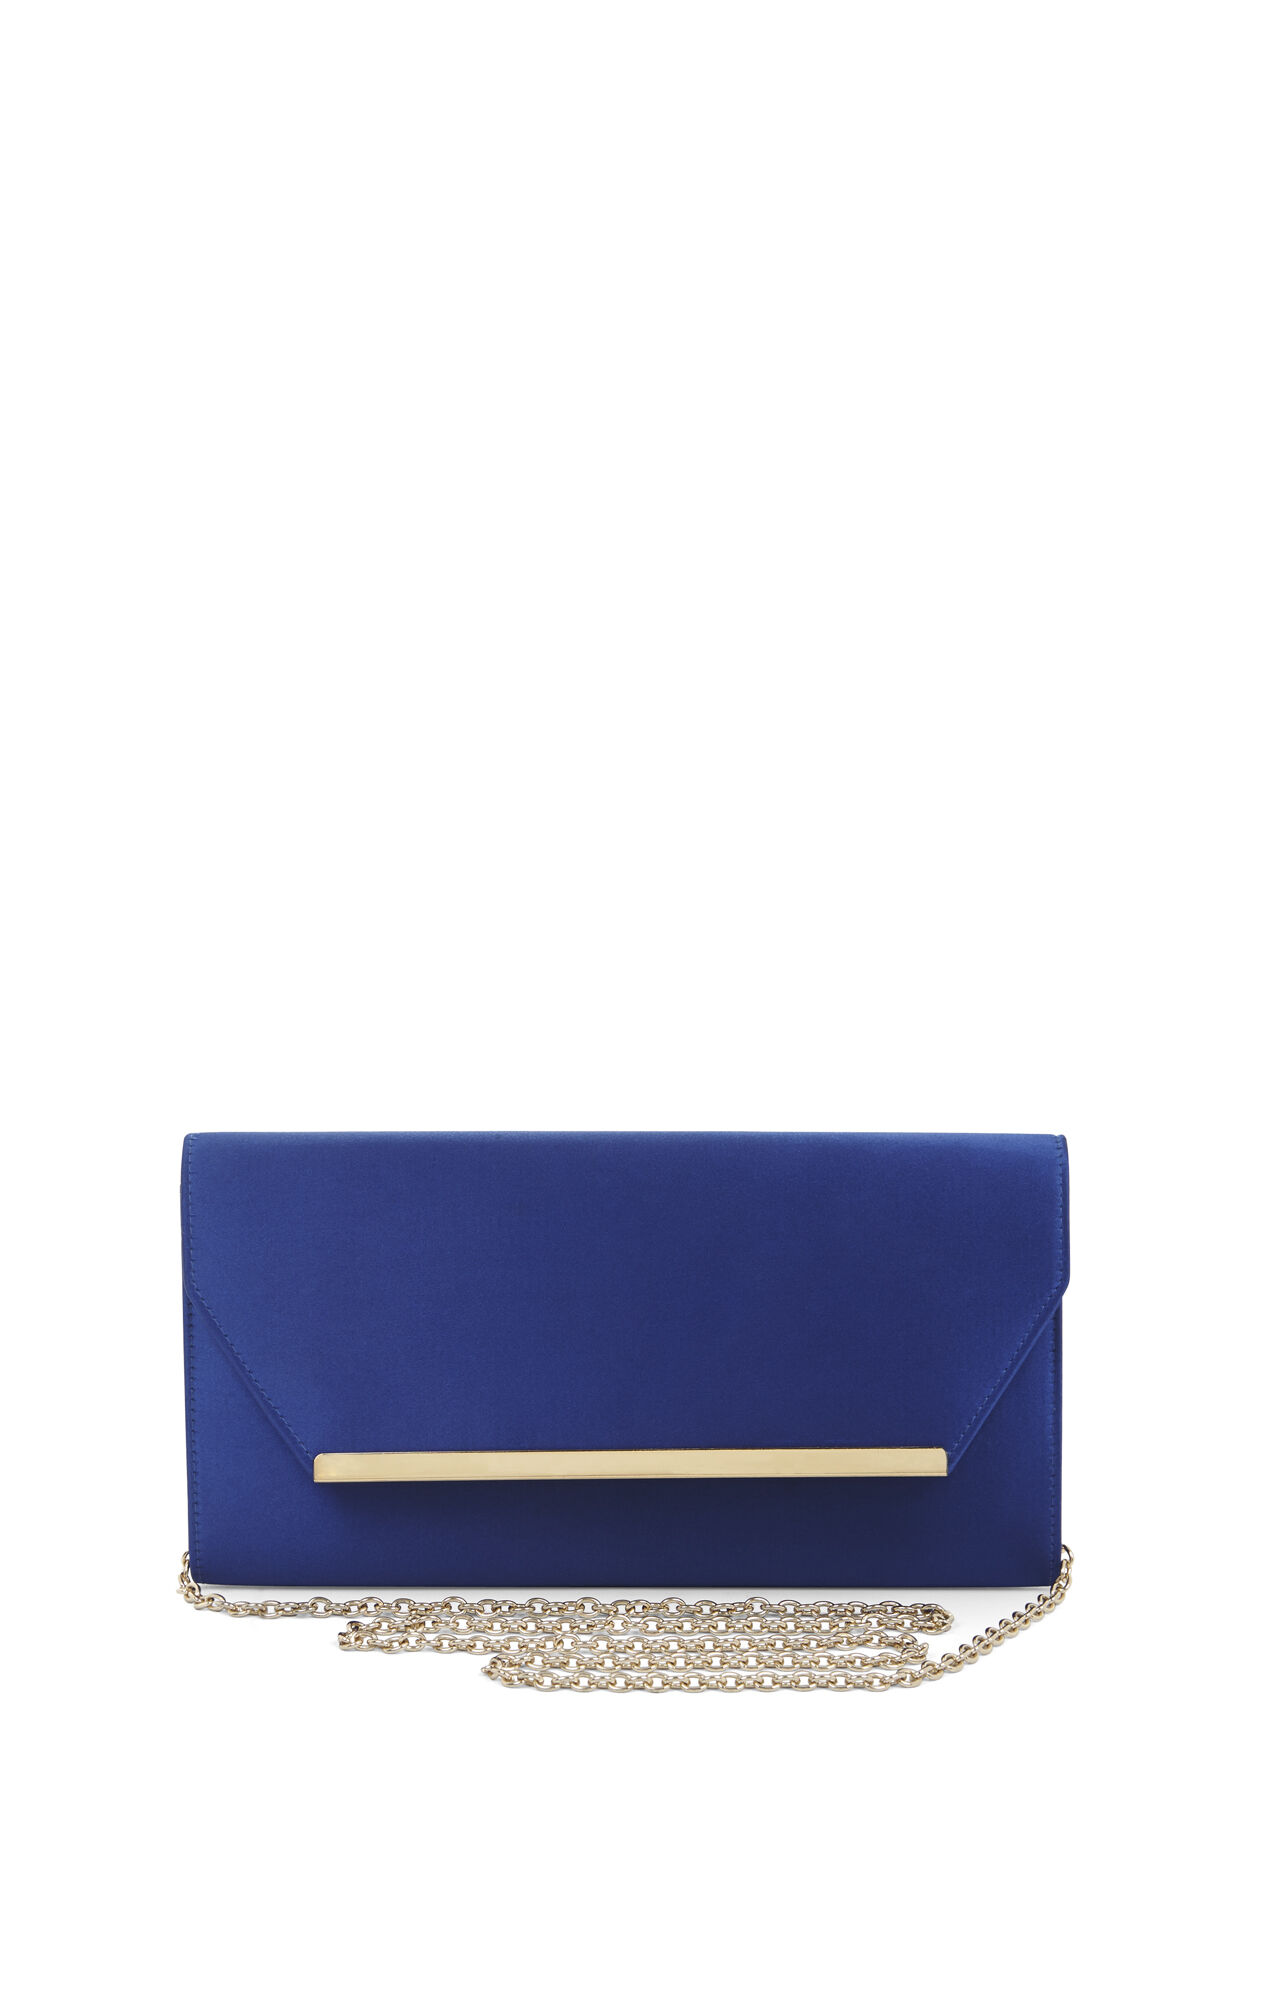 Helen Satin Envelope Clutch